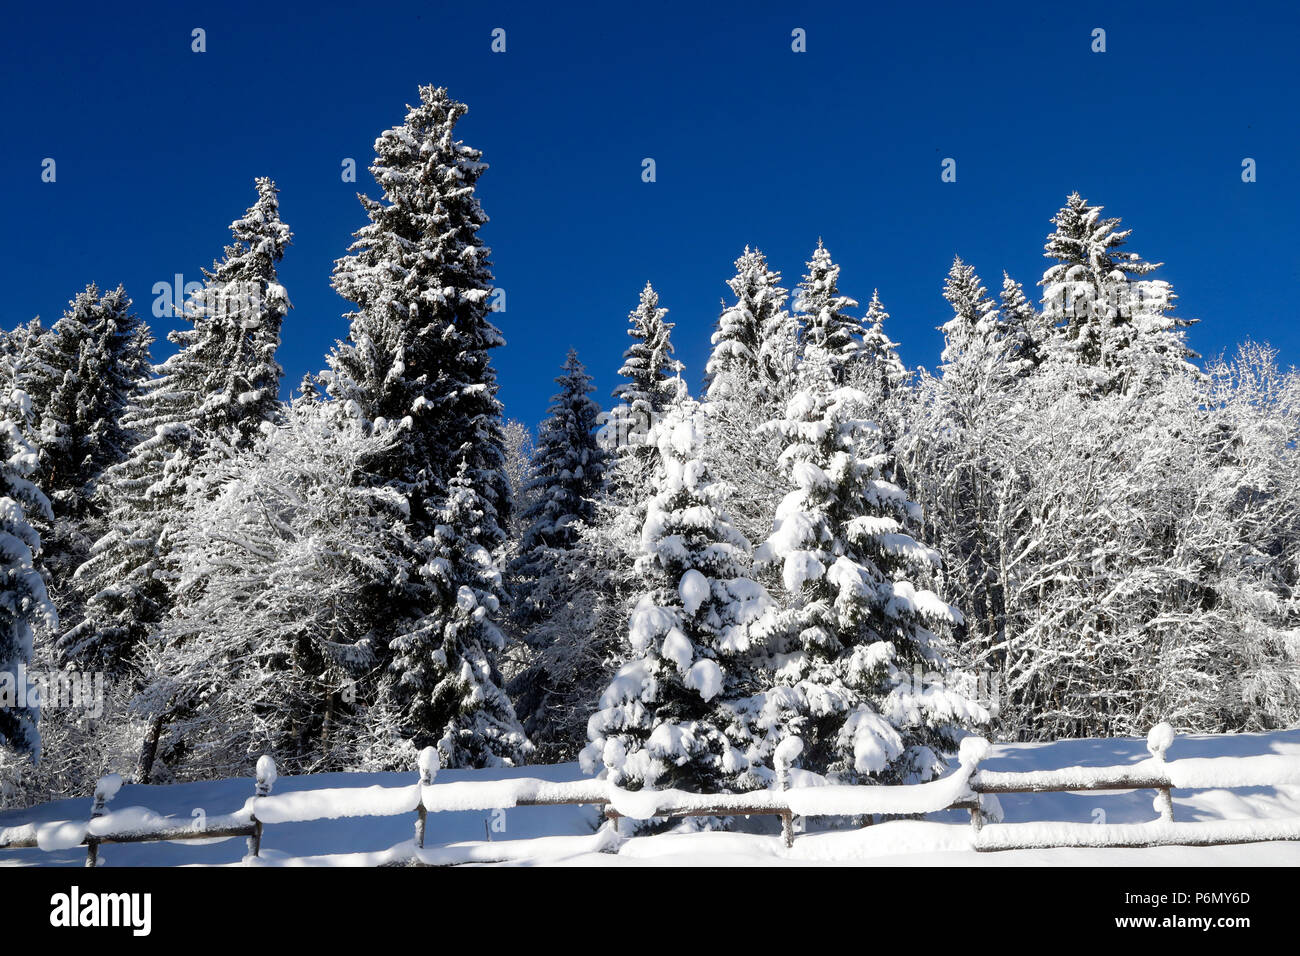 French Alps.  Snow covered fir trees in winter.  France. - Stock Image